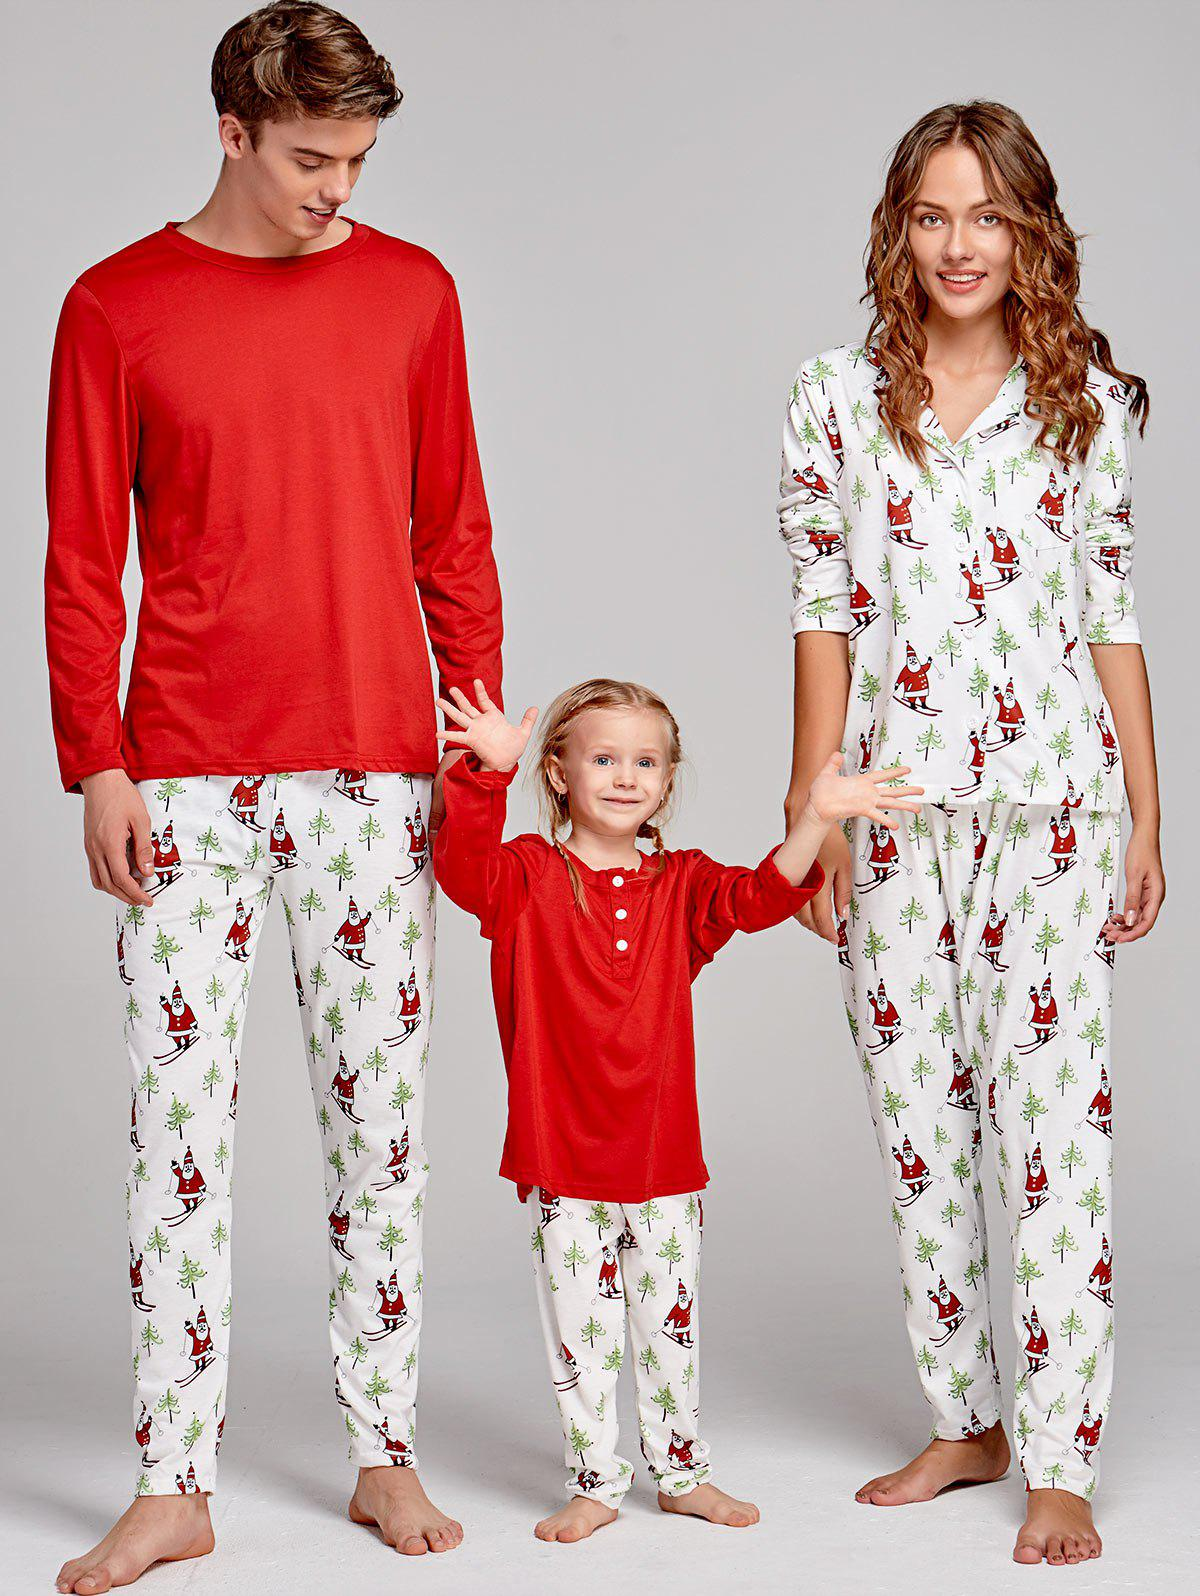 Santa Claus Printed Family Christmas Pajama Set - COLORMIX MOM S